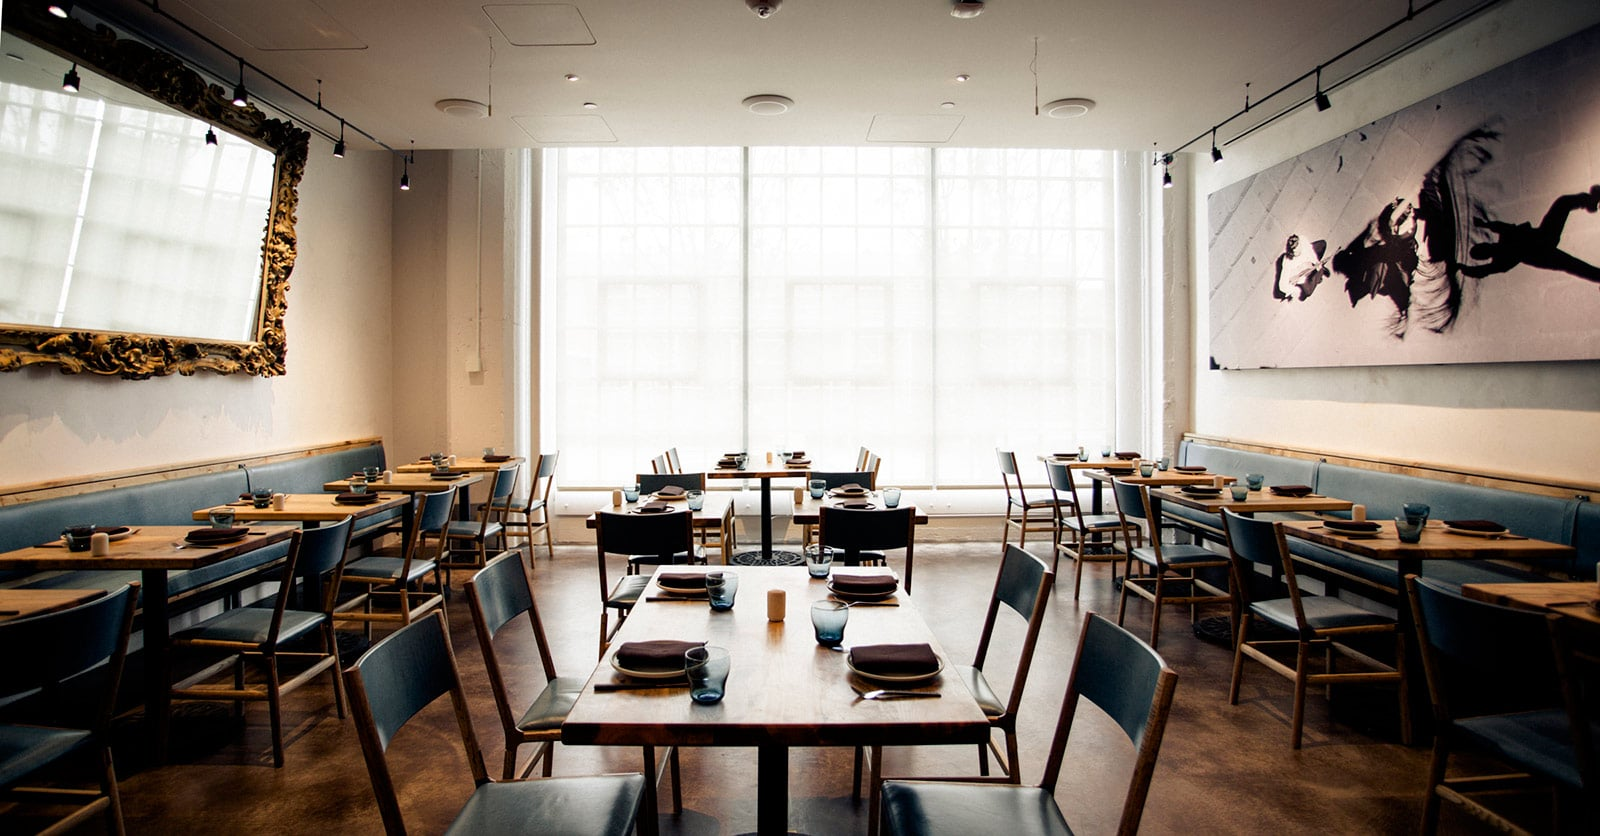 100 private dining room san francisco win a chance to host your own intimate gathering in - San francisco private dining rooms ...